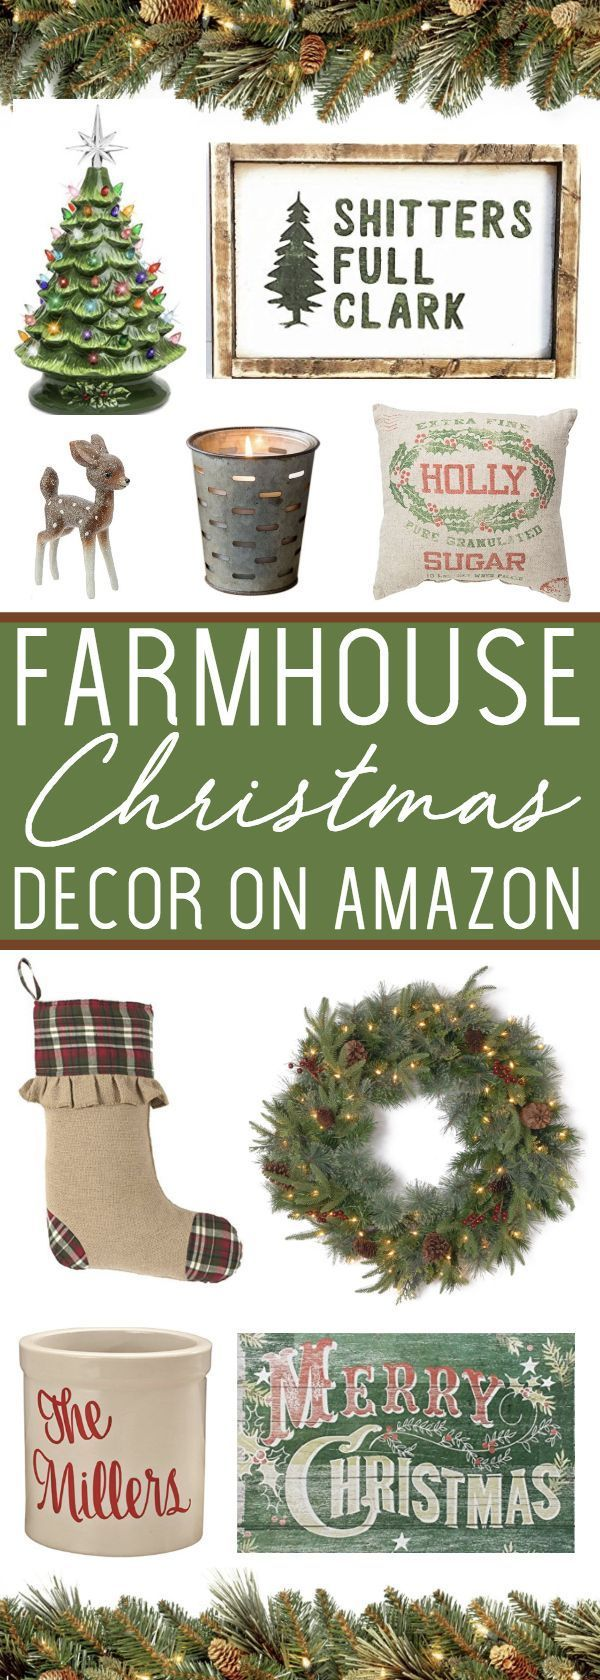 Farmhouse Christmas Decor On Amazon These Top Picks Are Sure To Bring Holiday Christmas Decorations Rustic Diy Christmas Decorations Easy Christmas Decor Diy